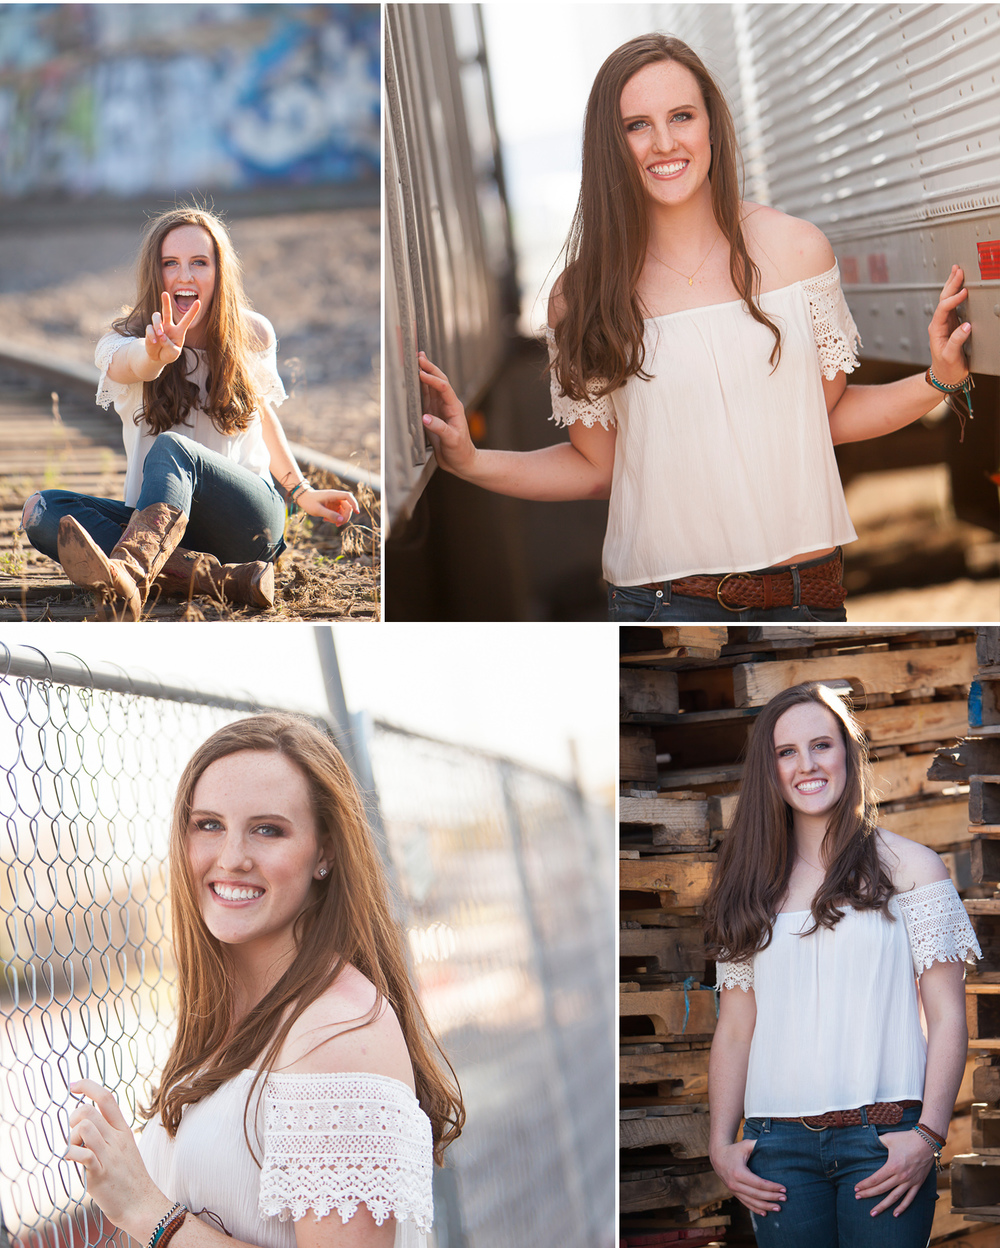 High School Senior Portraits of long haired young woman on location with fencing, trucks and out of use train tracks in Denver. Photographer Jennifer Koskinen, Merritt Design Photo